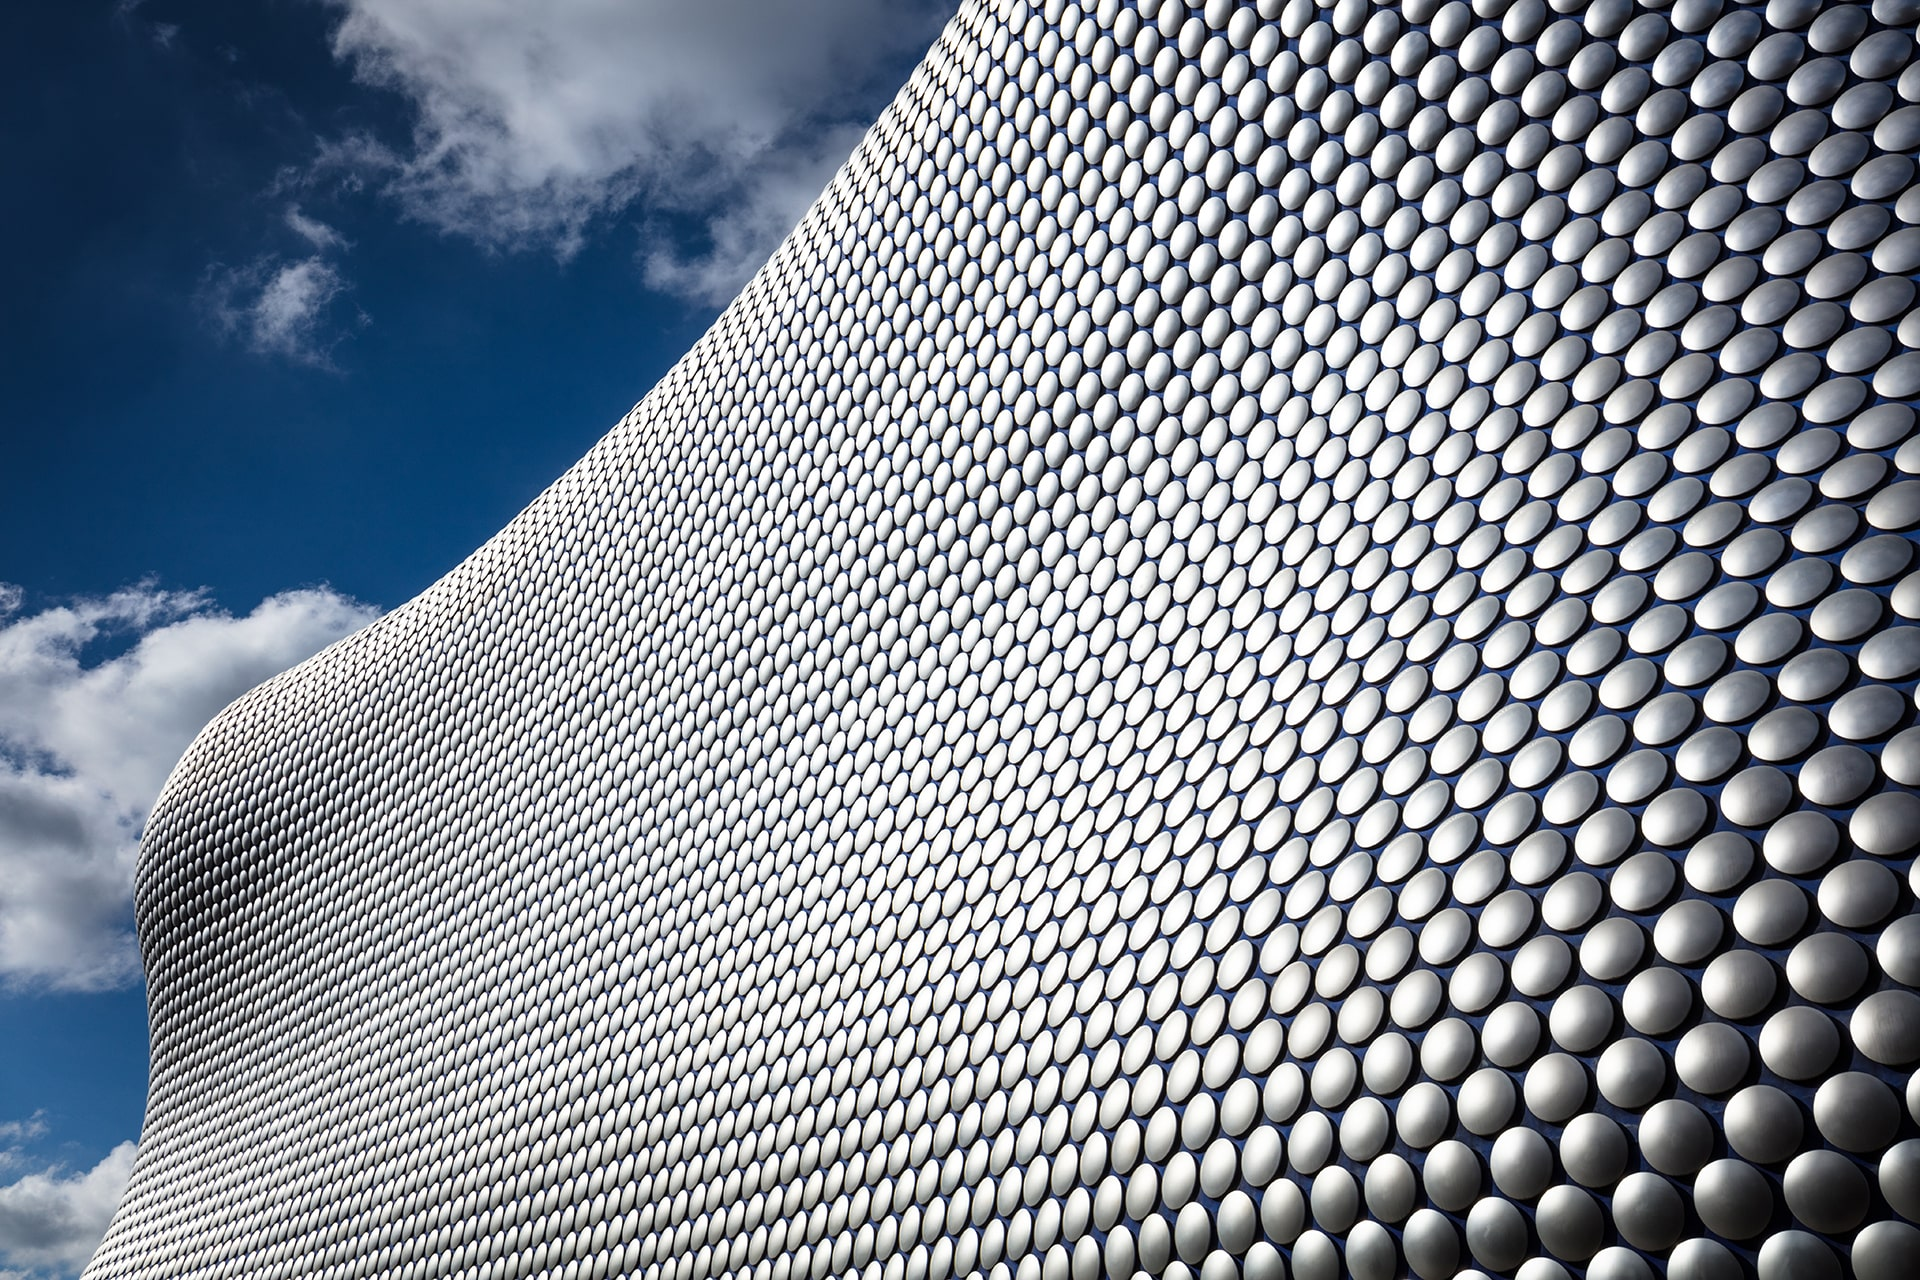 property investment in birmingham The bull ring Birmingham